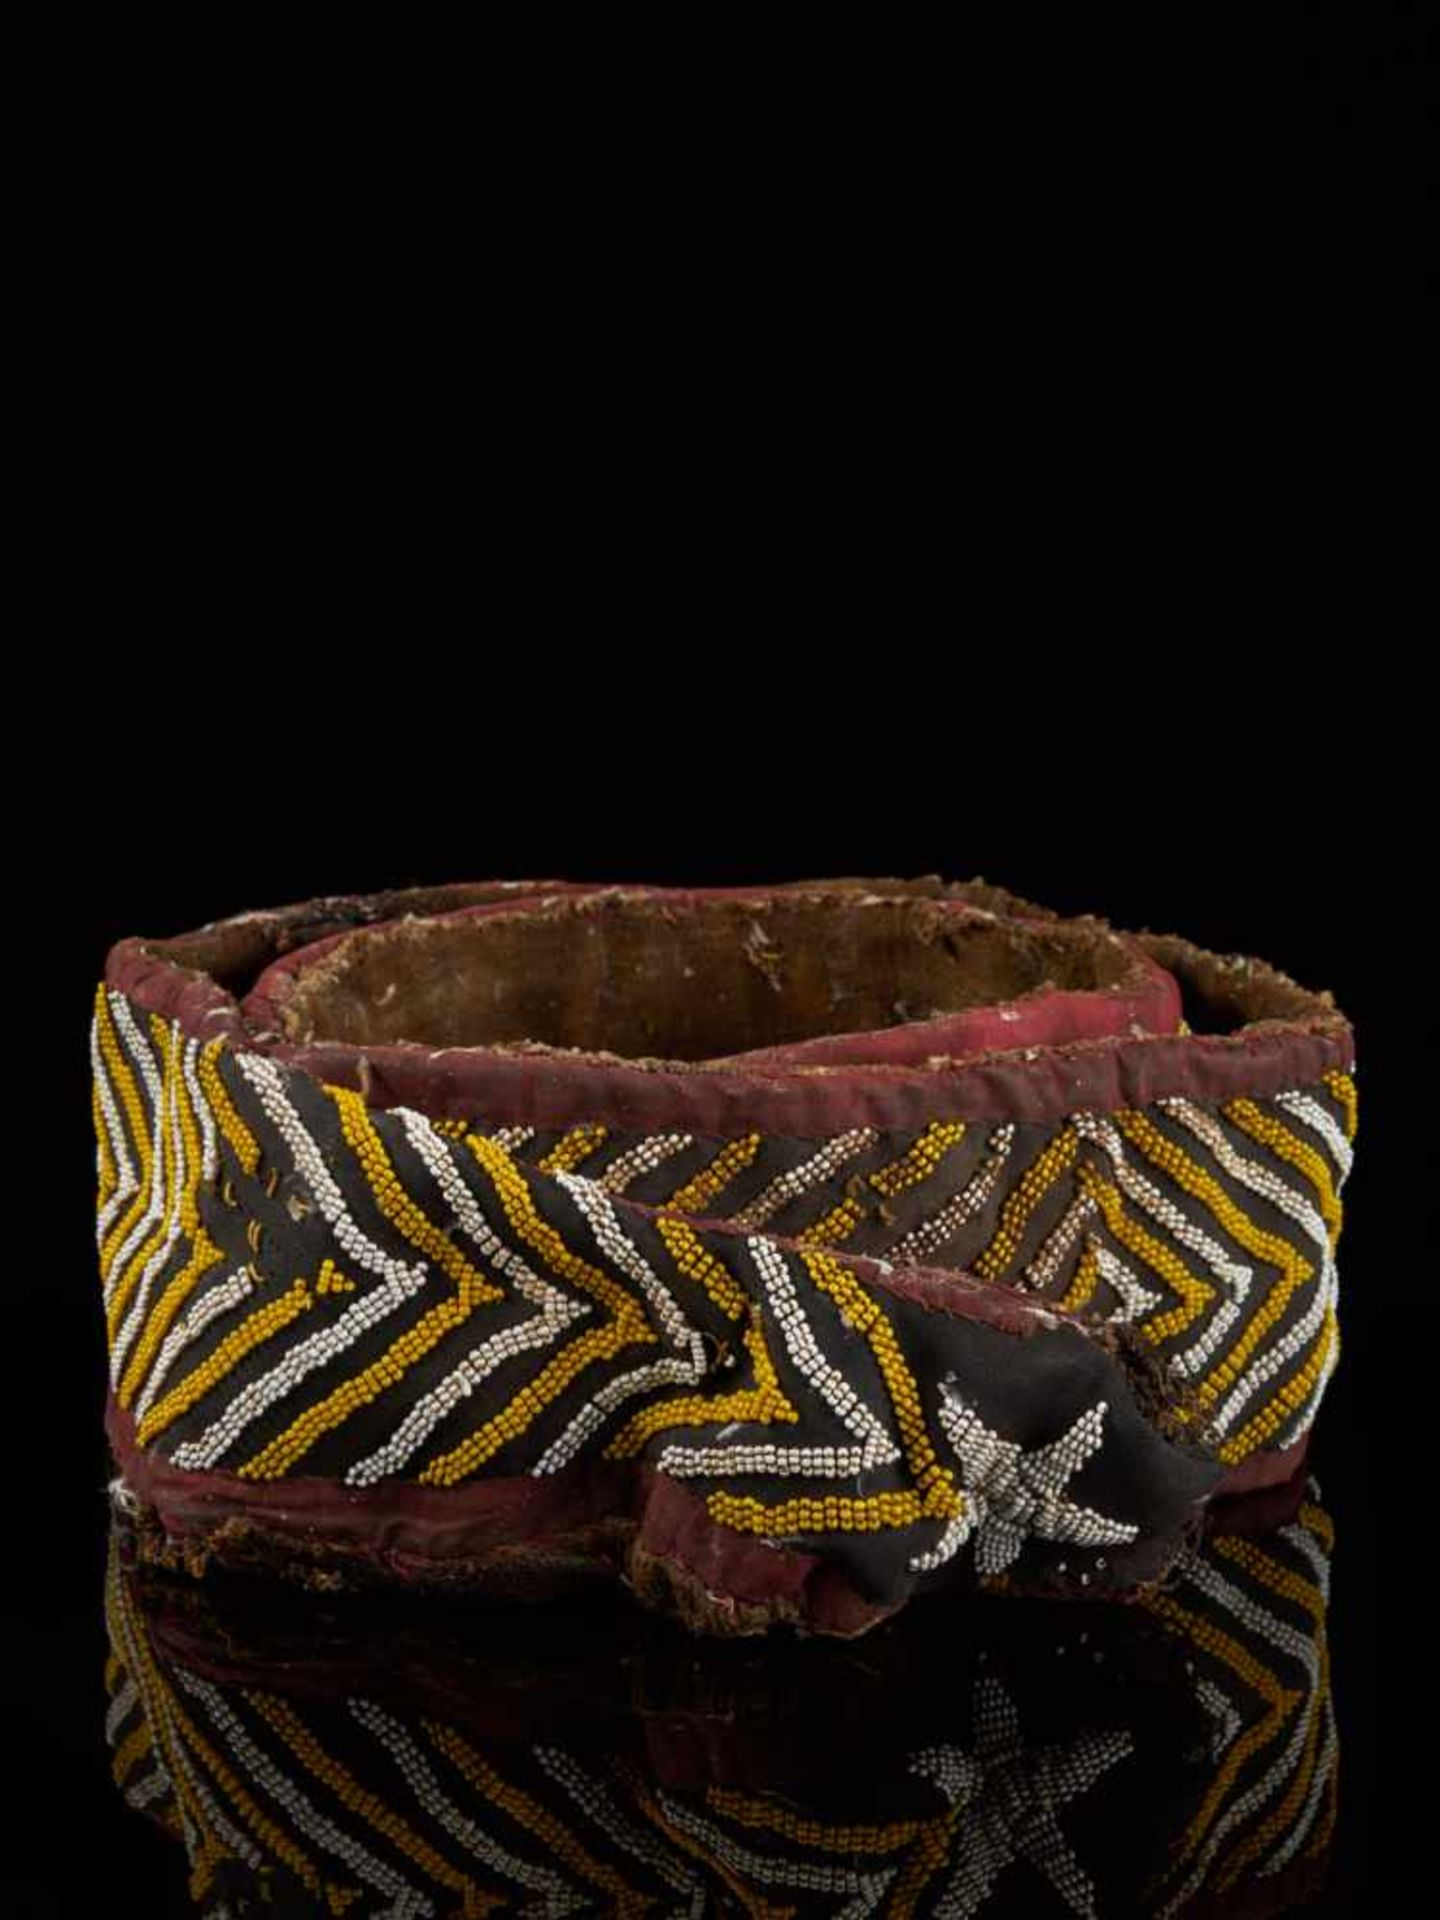 Beaded Double Headed Snake Belt - Tribal ArtThe double headed snake is the symbol of the Bamum